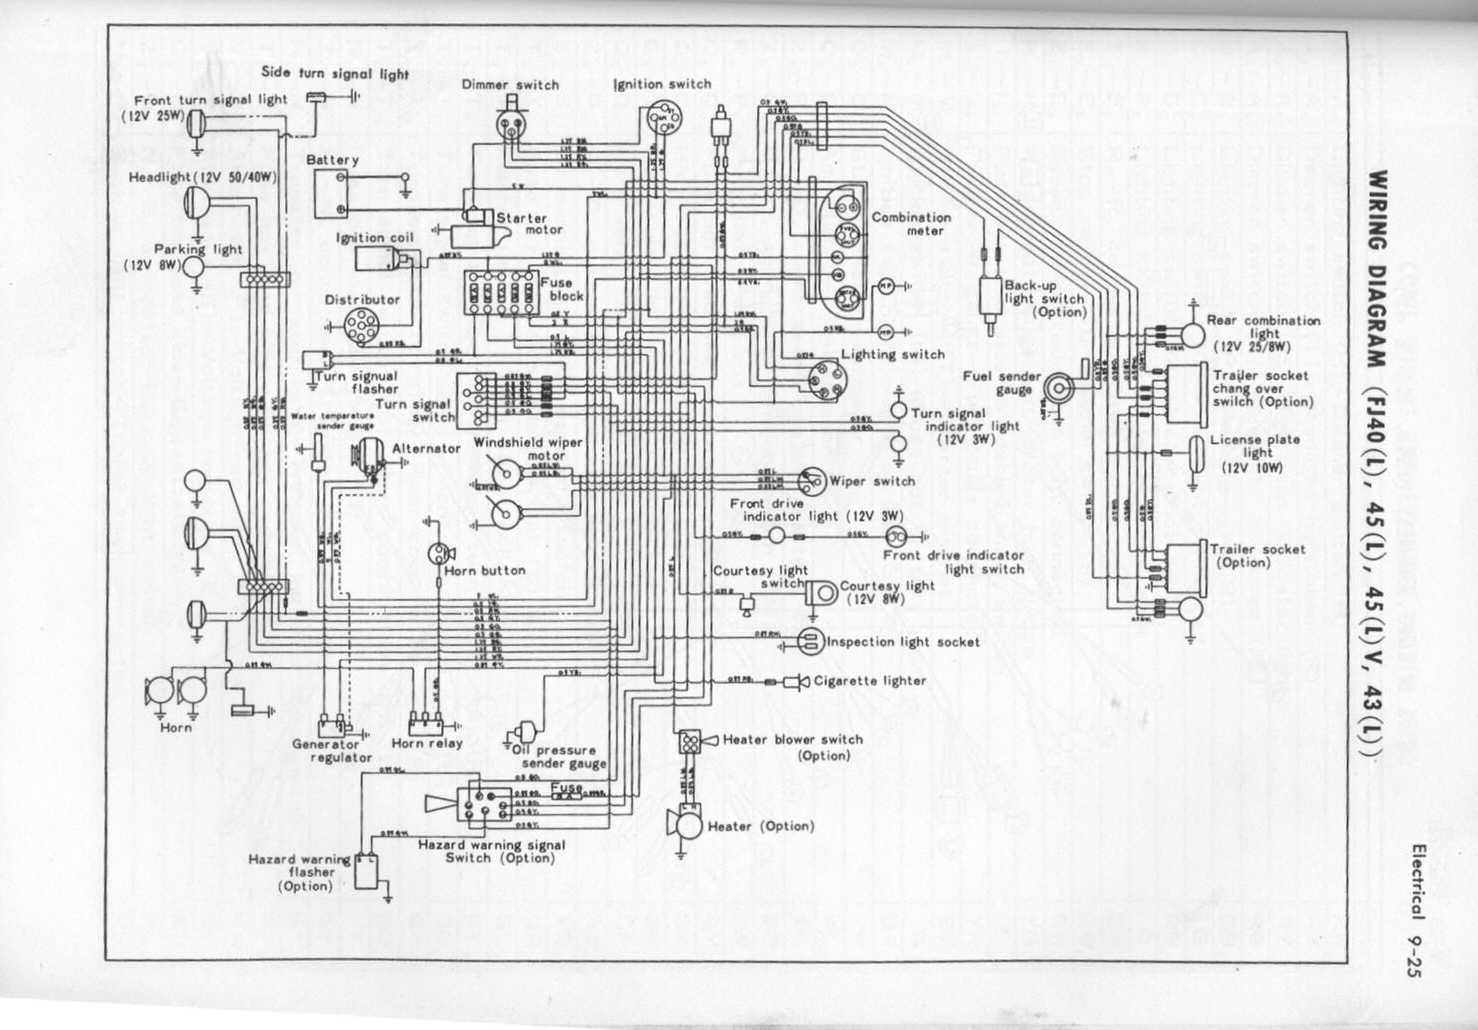 1 untitled document 72 fj40 wiring diagram at creativeand.co